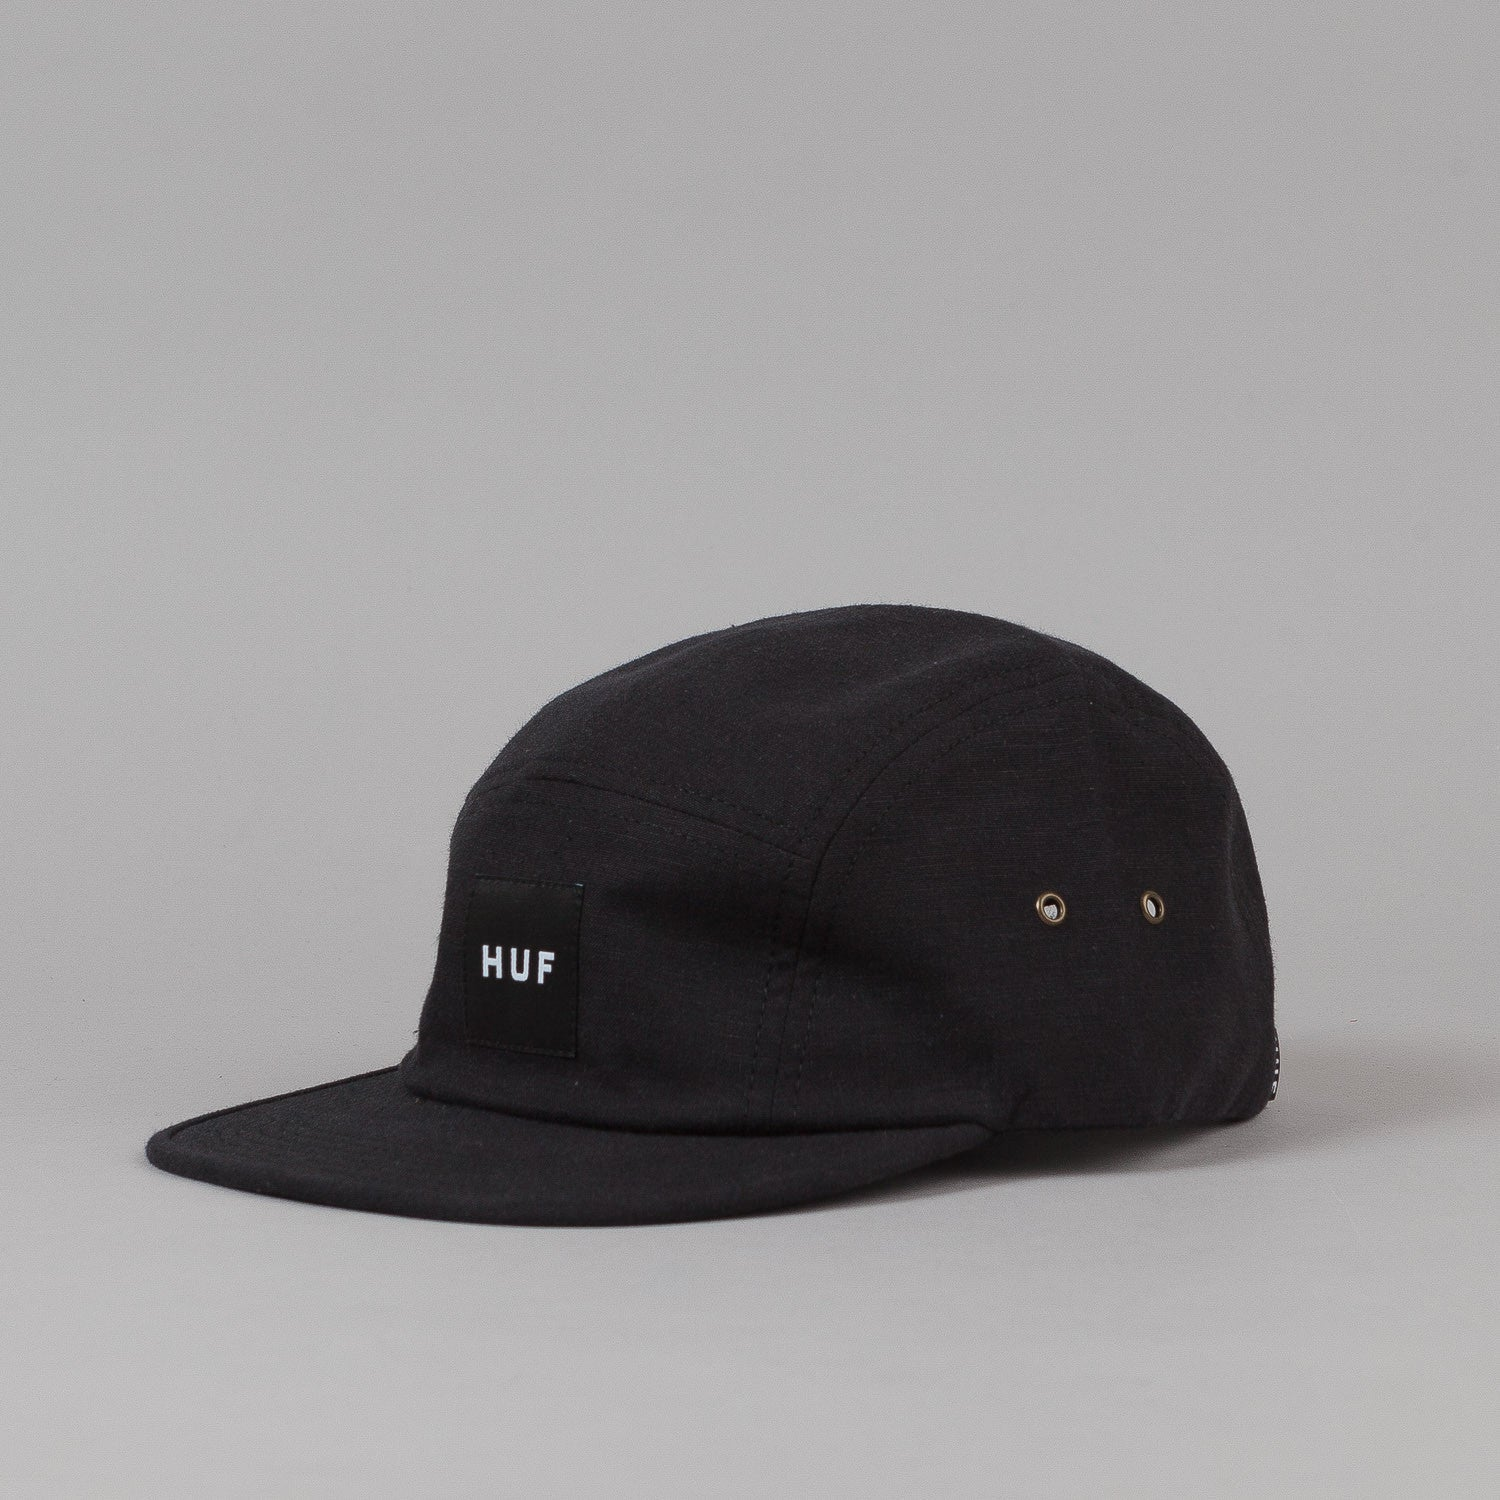 Huf Osaka Volley Adjustable Cap